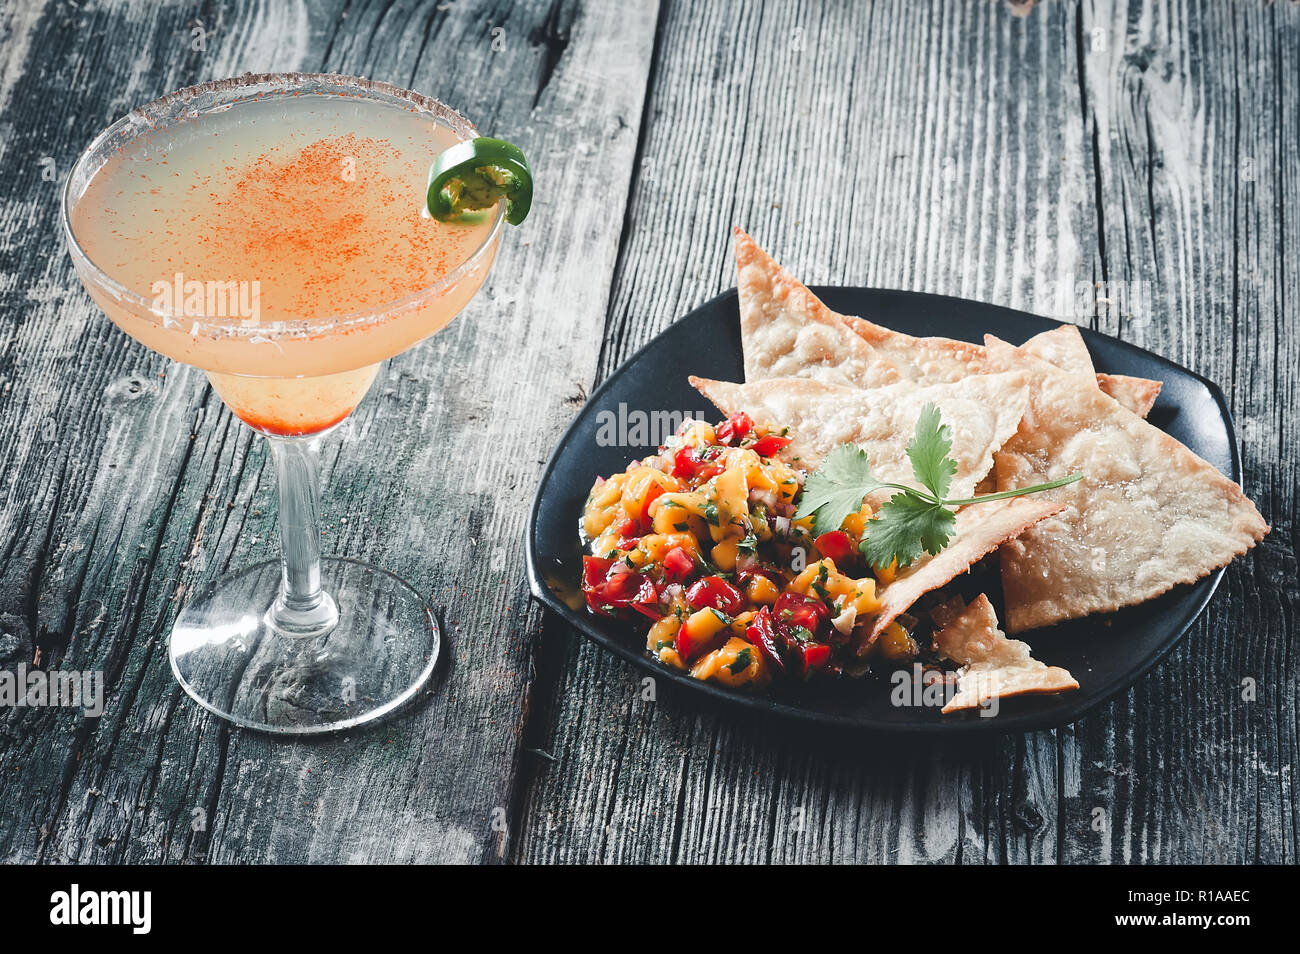 Spicy margarita with fresh mango salsa and home made tortilla chips. - Stock Image